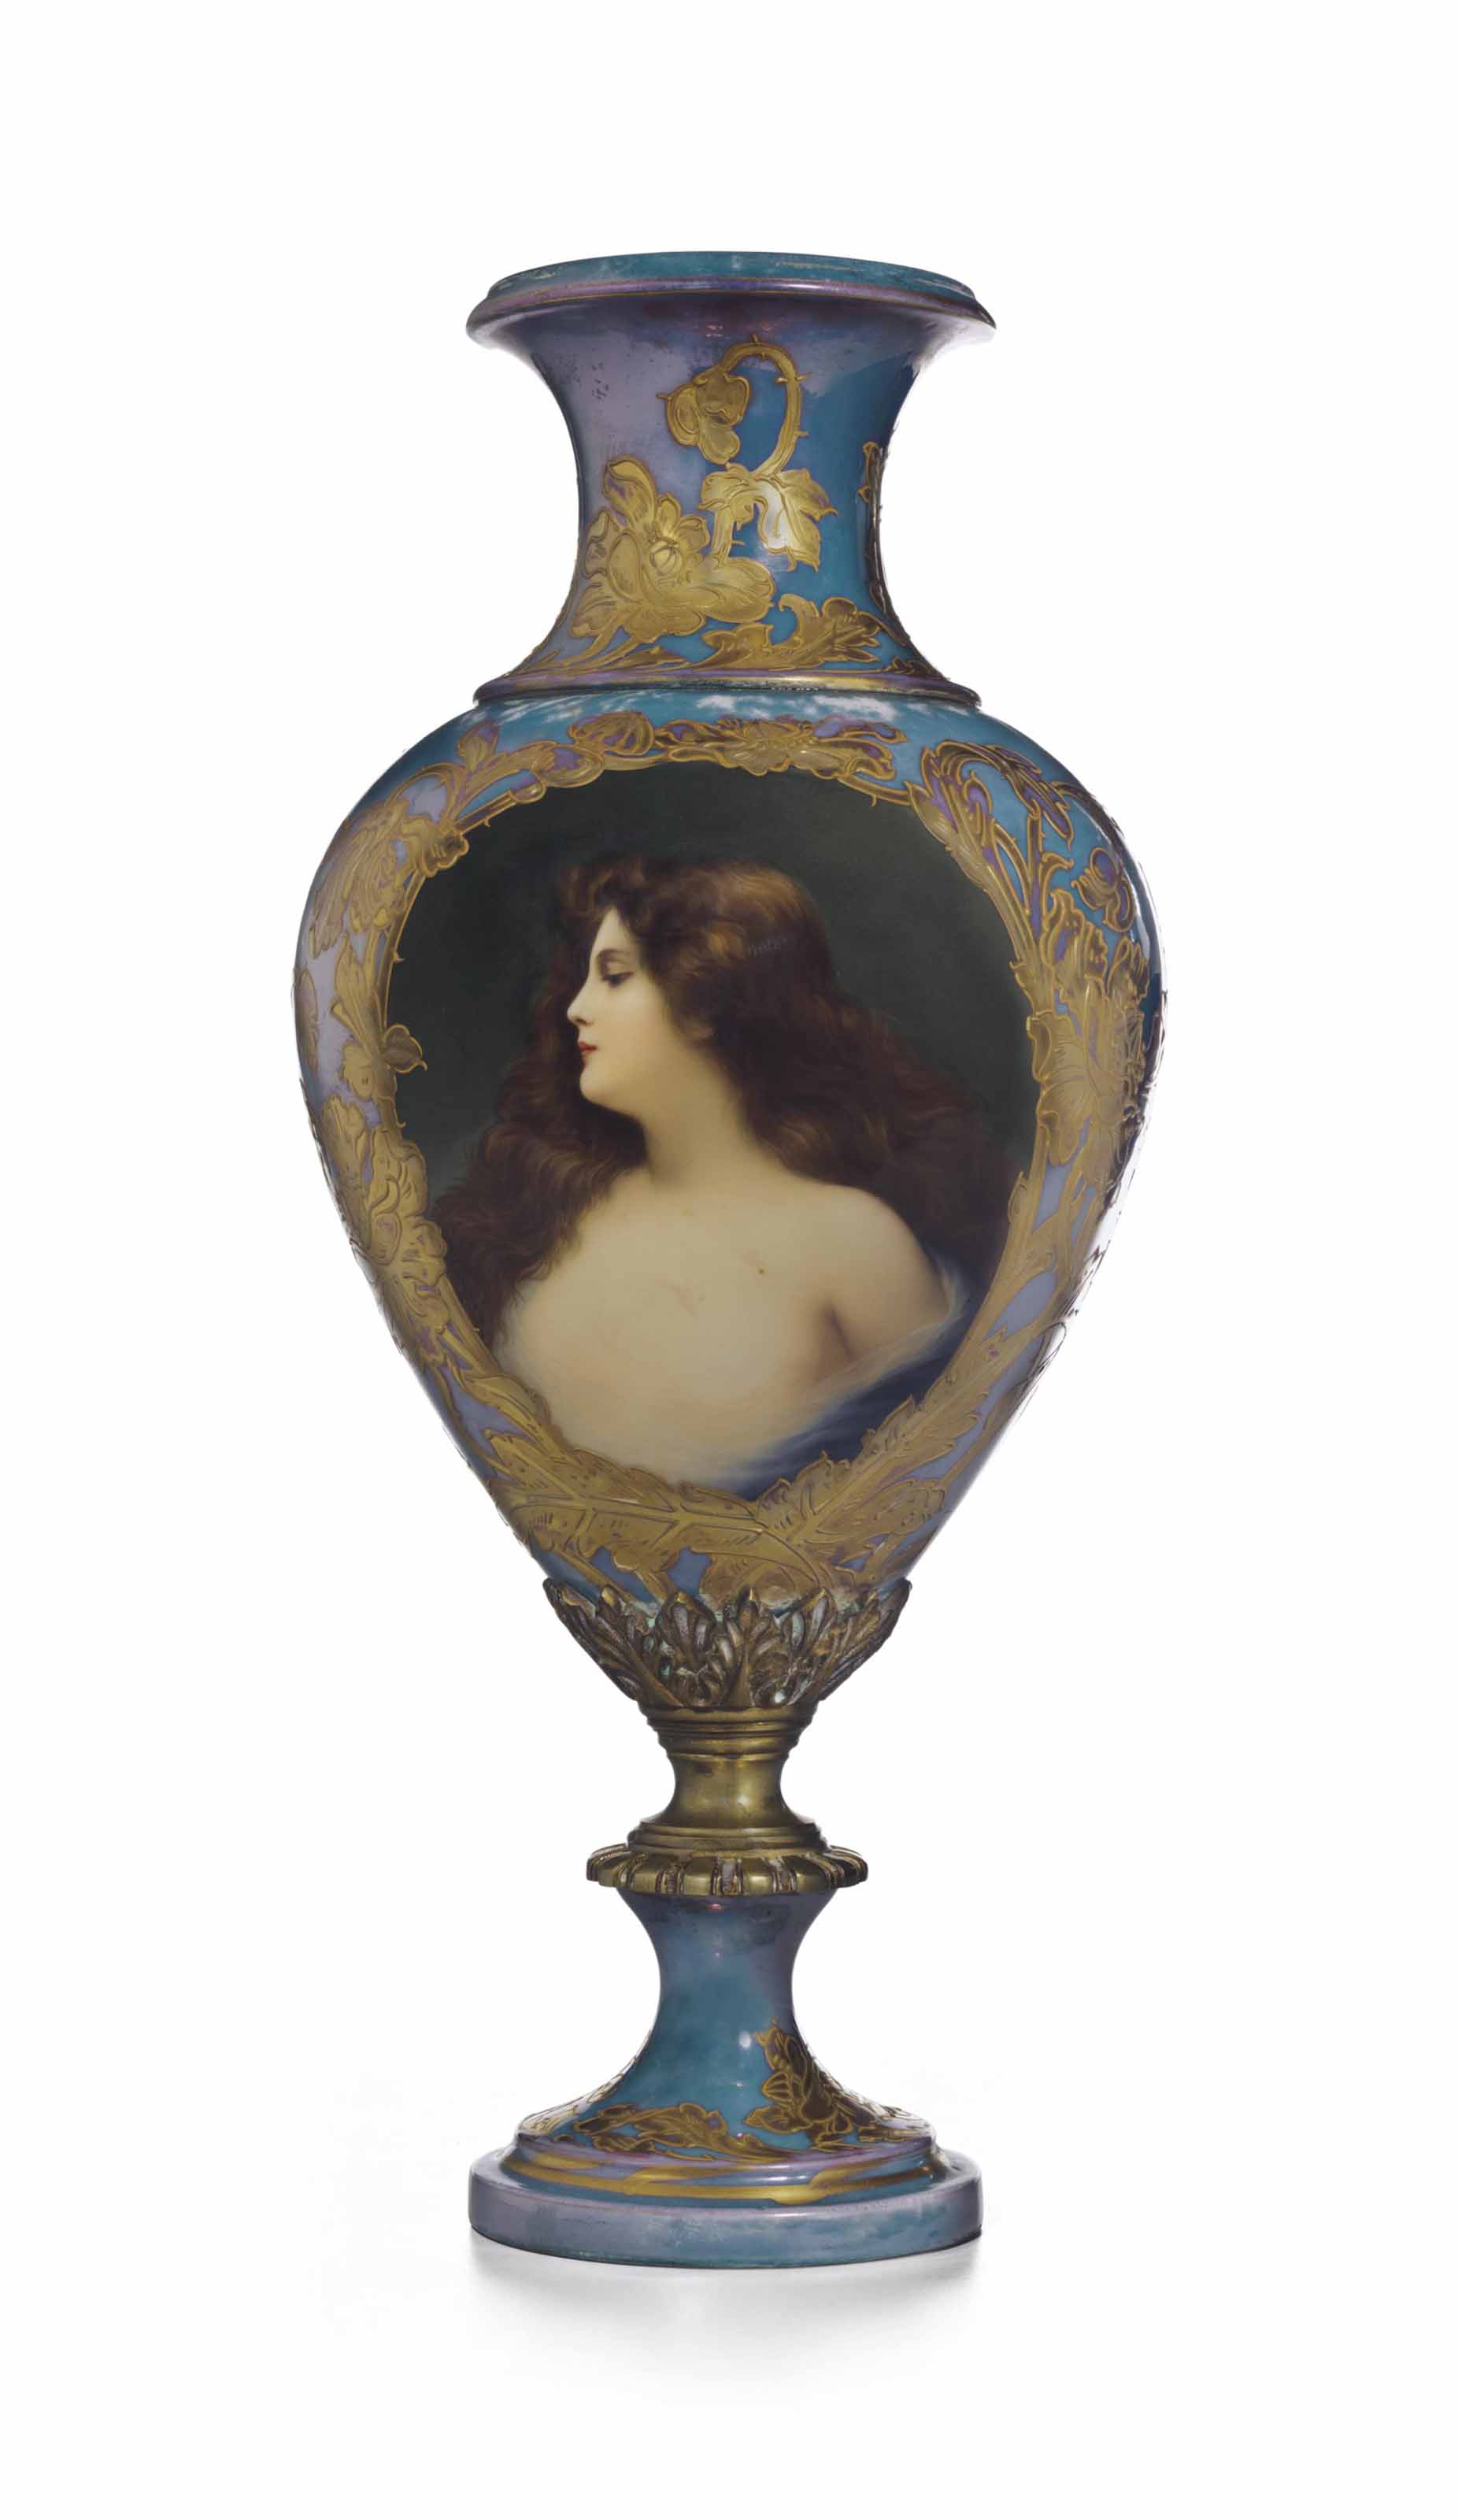 AN ORMOLU-MOUNTED VIENNA STYLE PORCELAIN IRIDESCENT-BLUE GROUND PORTRAIT VASE